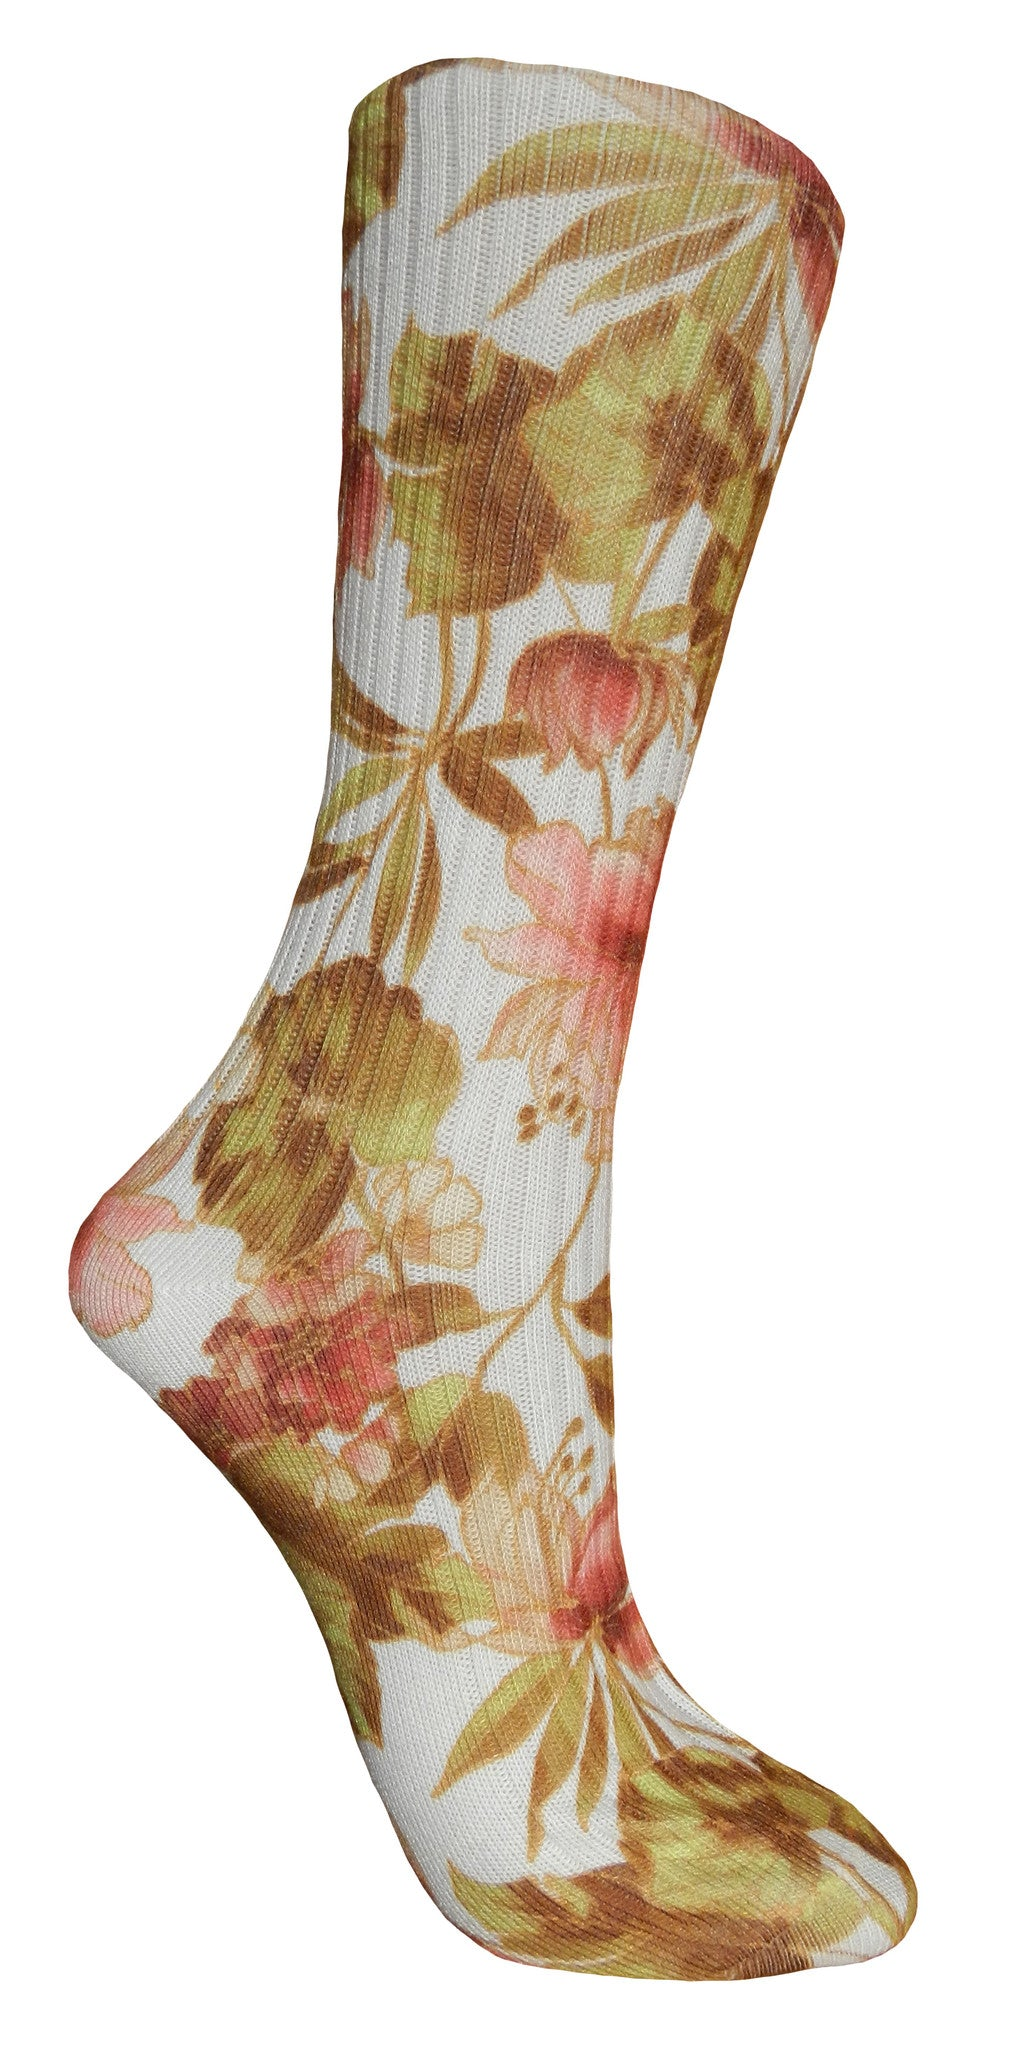 Soxtrot Cotton Sox - Lily of the Incas